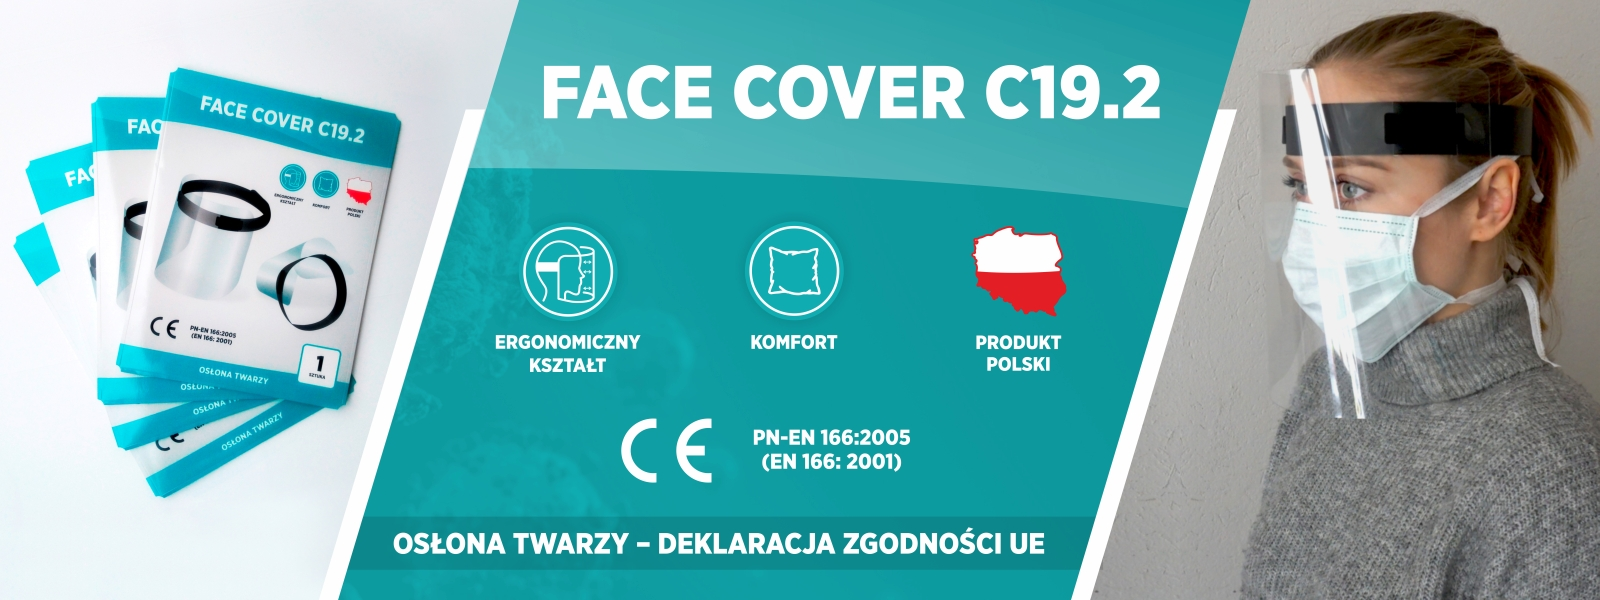 Face Cover C19.2